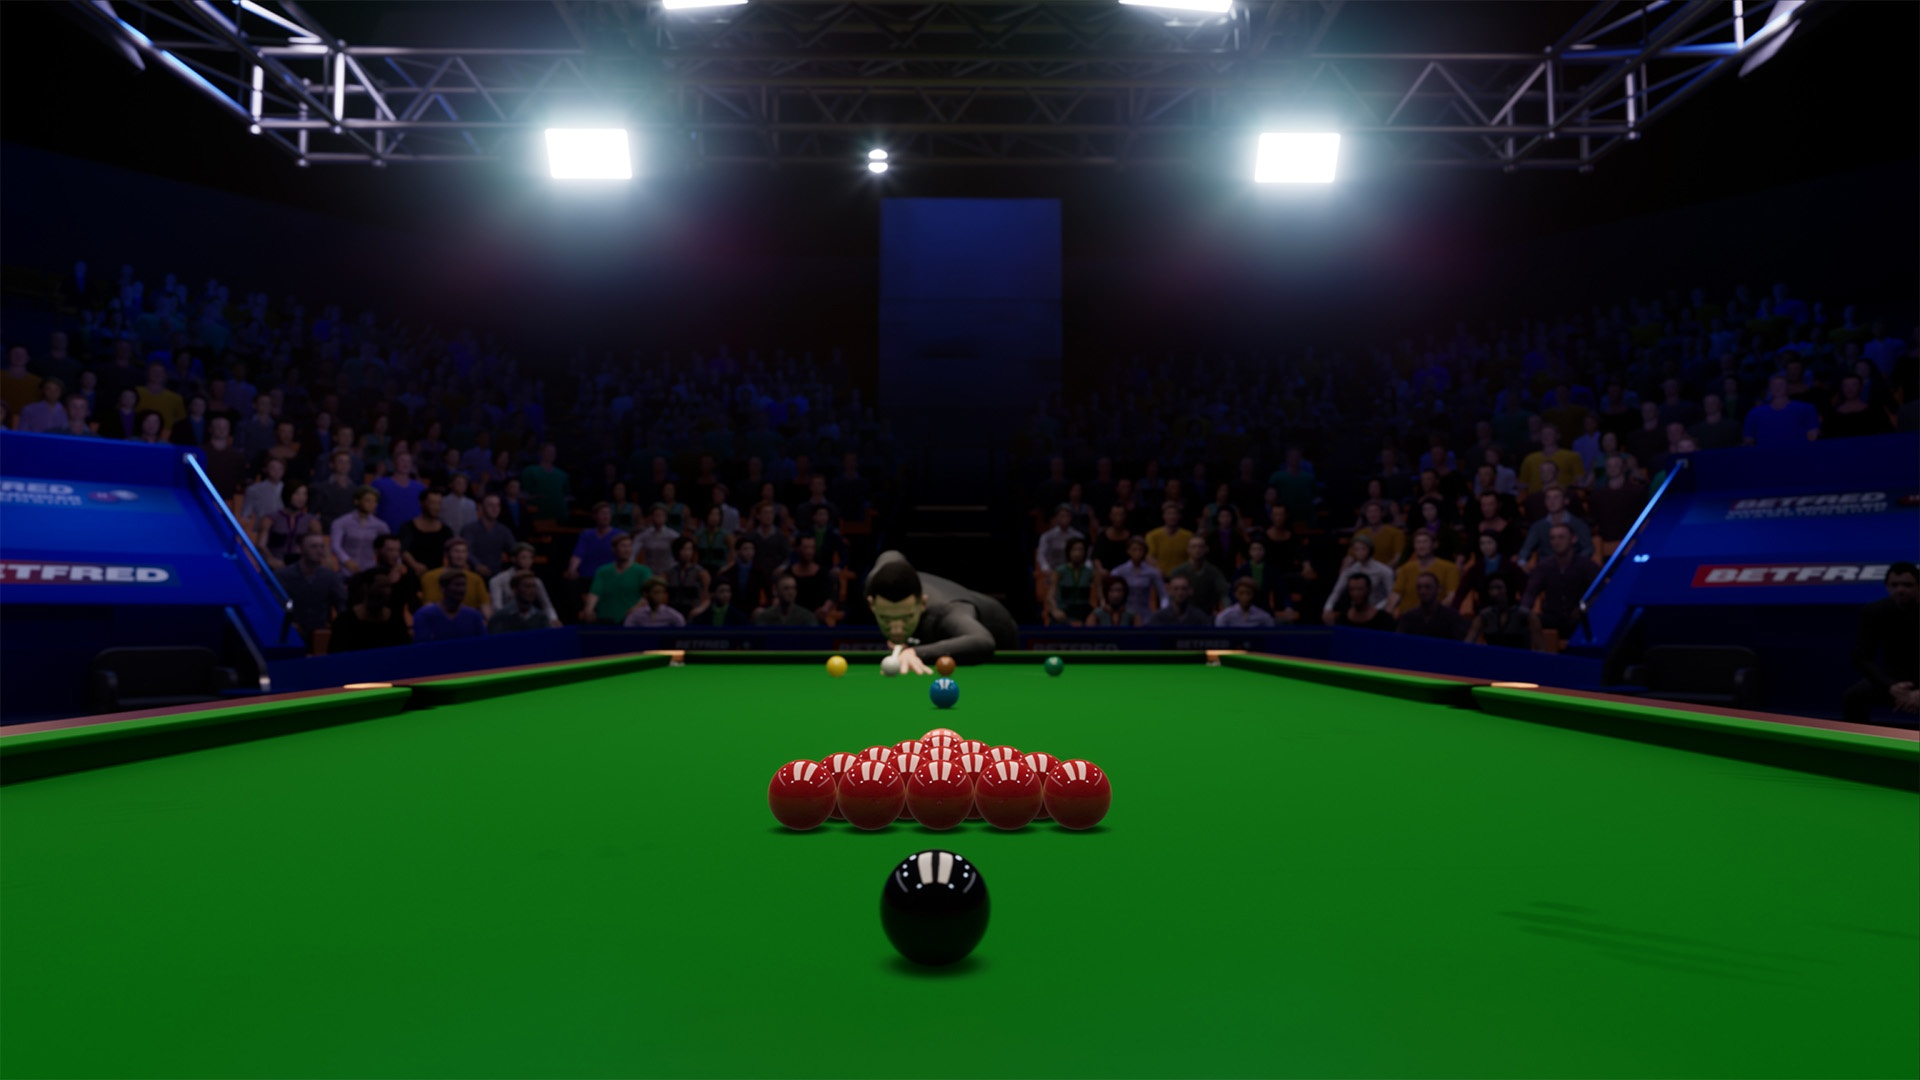 Billiards, casual, indie, Lab42, multiplayer, Nintendo Switch Review, pool, Rating 8/10, Ripstone, simulation, Snooker, Snooker 19, Snooker 19 Review, Sports, Switch Review, Video Game, Video Game Review